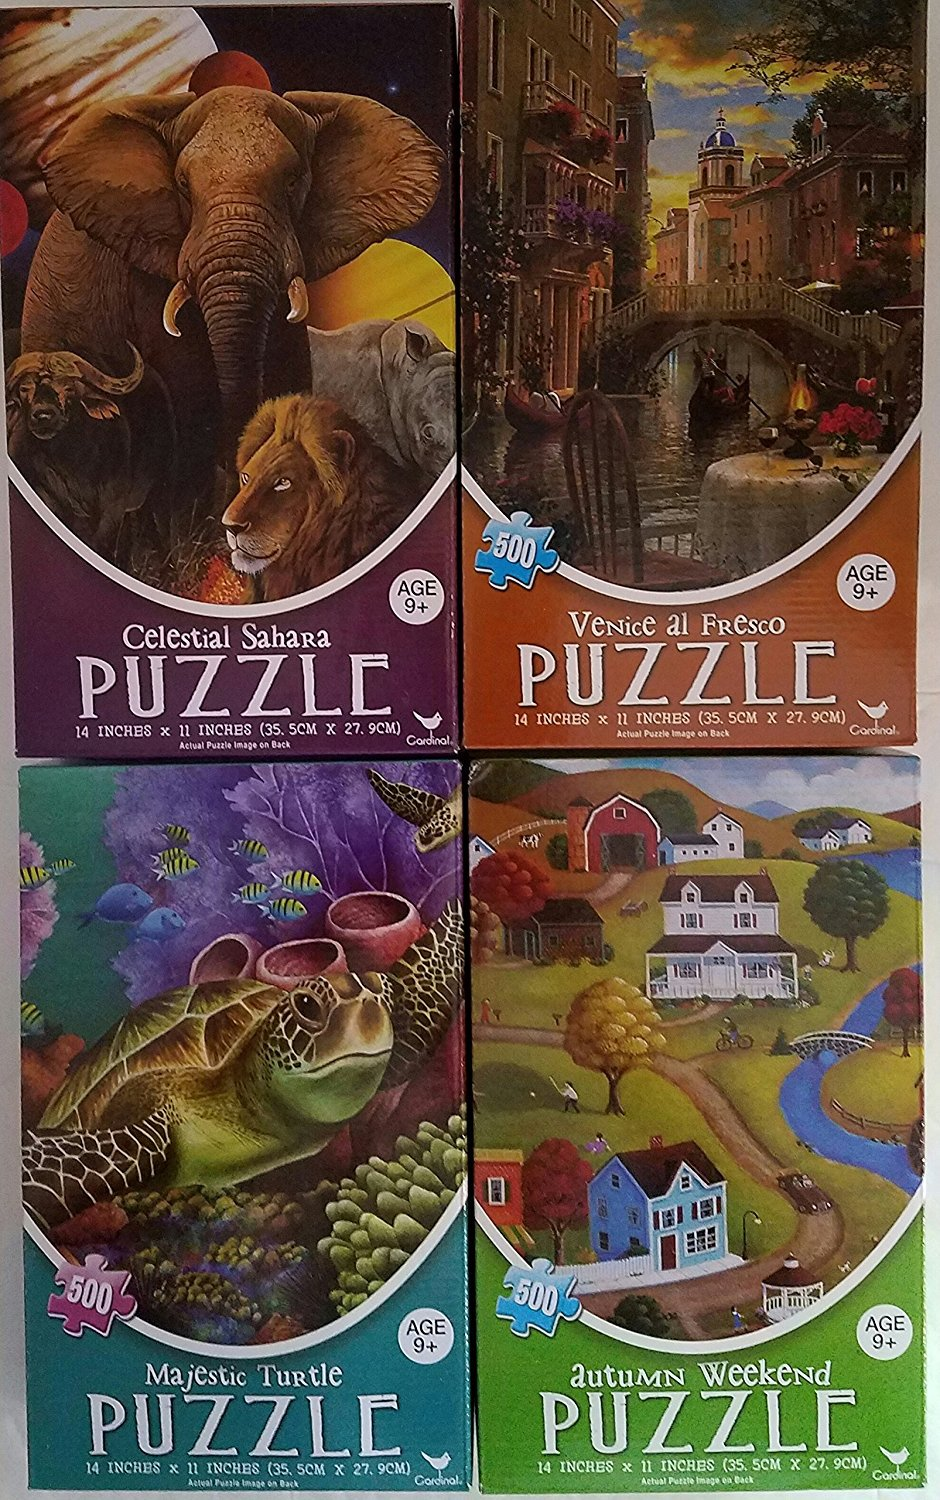 MAJESTIC TURTLE, AUTUMN WEEKEND, VENICE AL FRESCO, CELESTIAL SAHARA. 500 PIECE PUZZLES